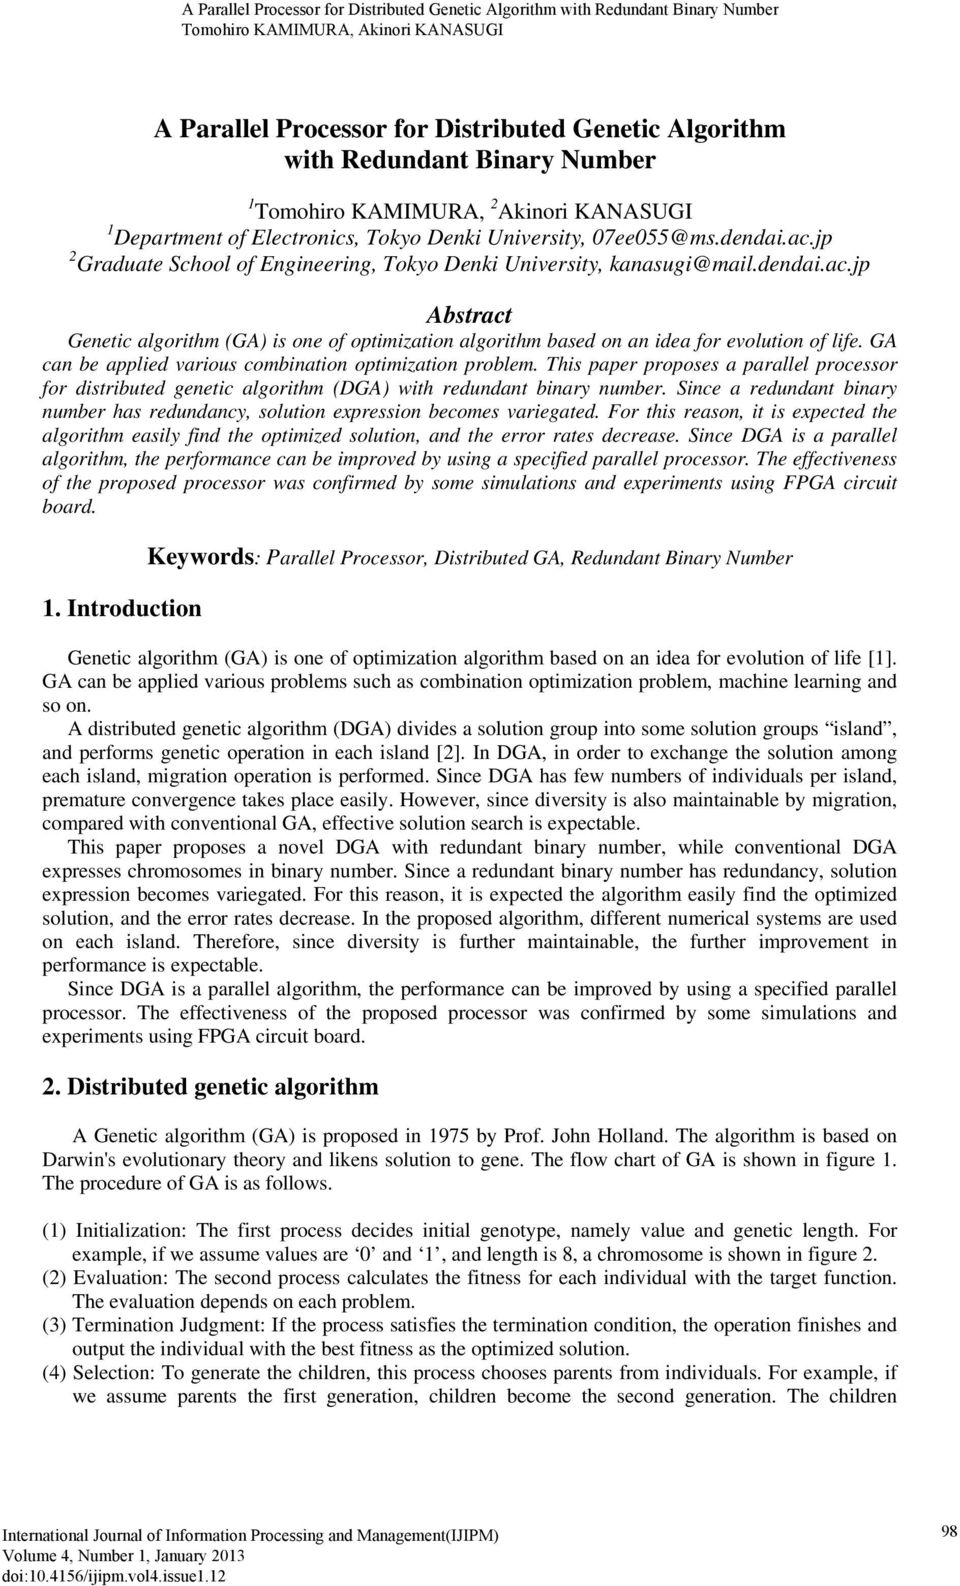 GA can be applied various combination optimization problem. This paper proposes a parallel processor for distributed genetic algorithm (DGA) with redundant binary number.